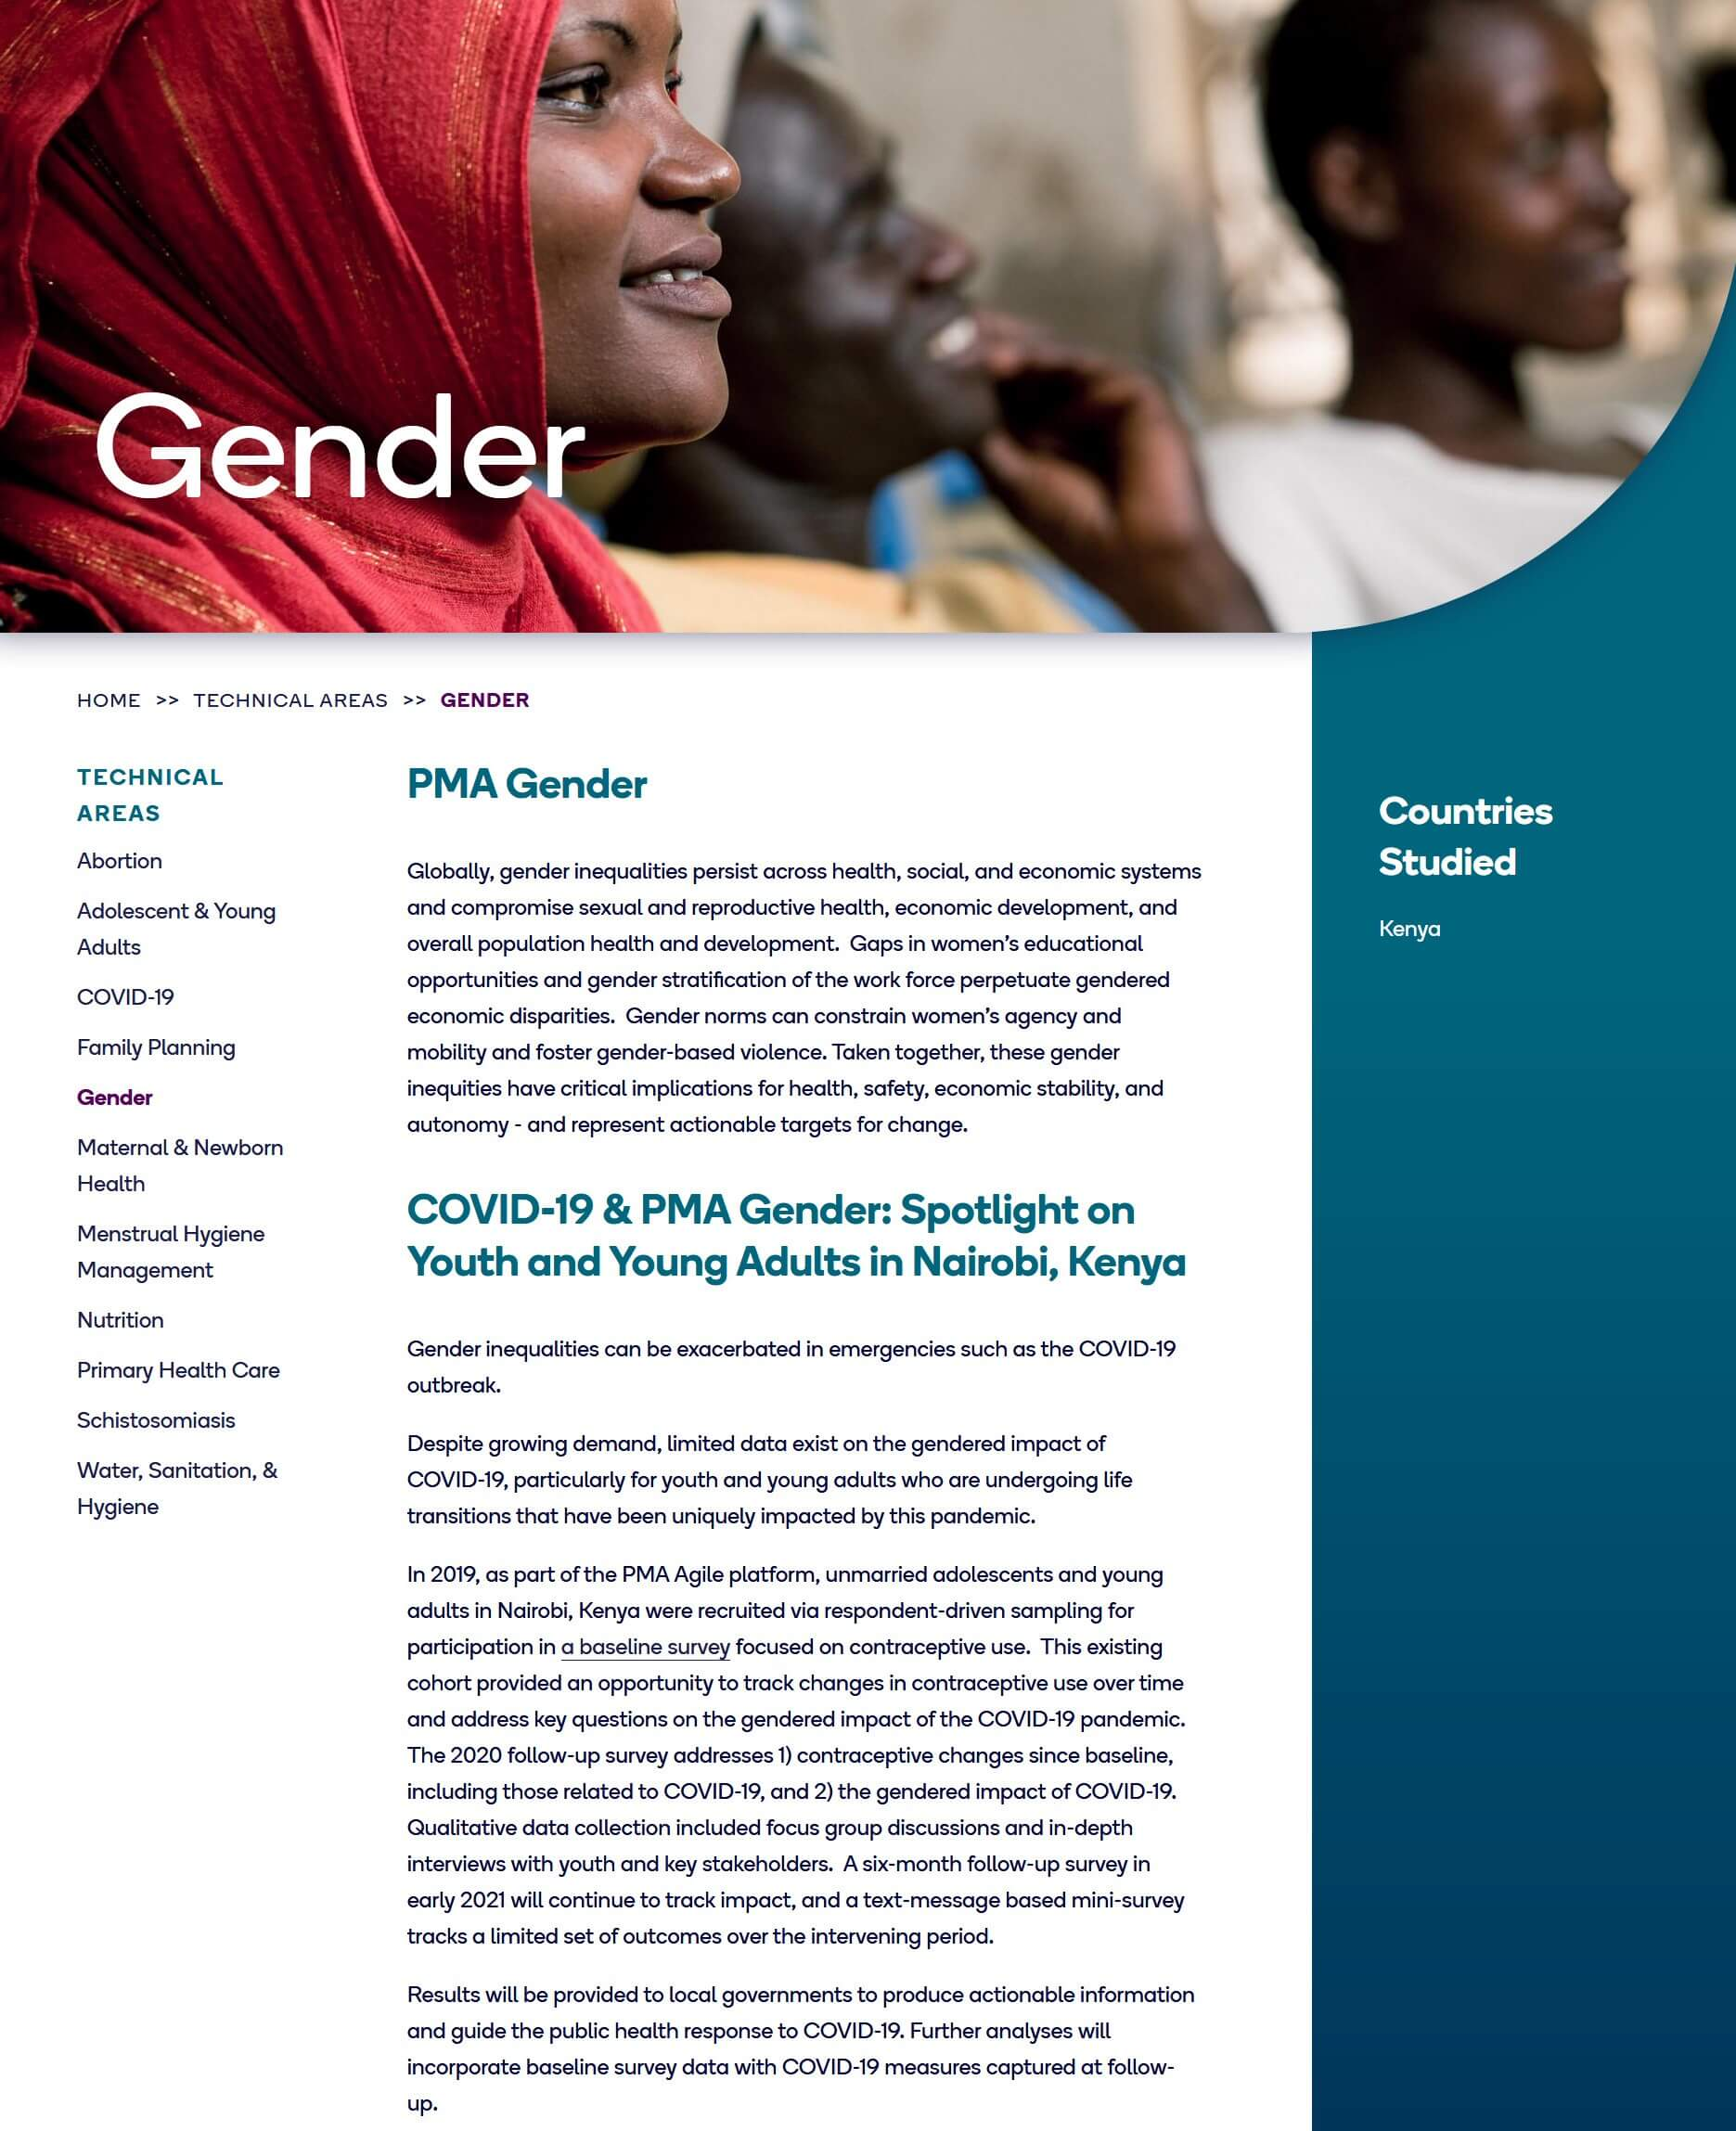 Spotlight on Youth and Young Adults in Nairobi, Kenya